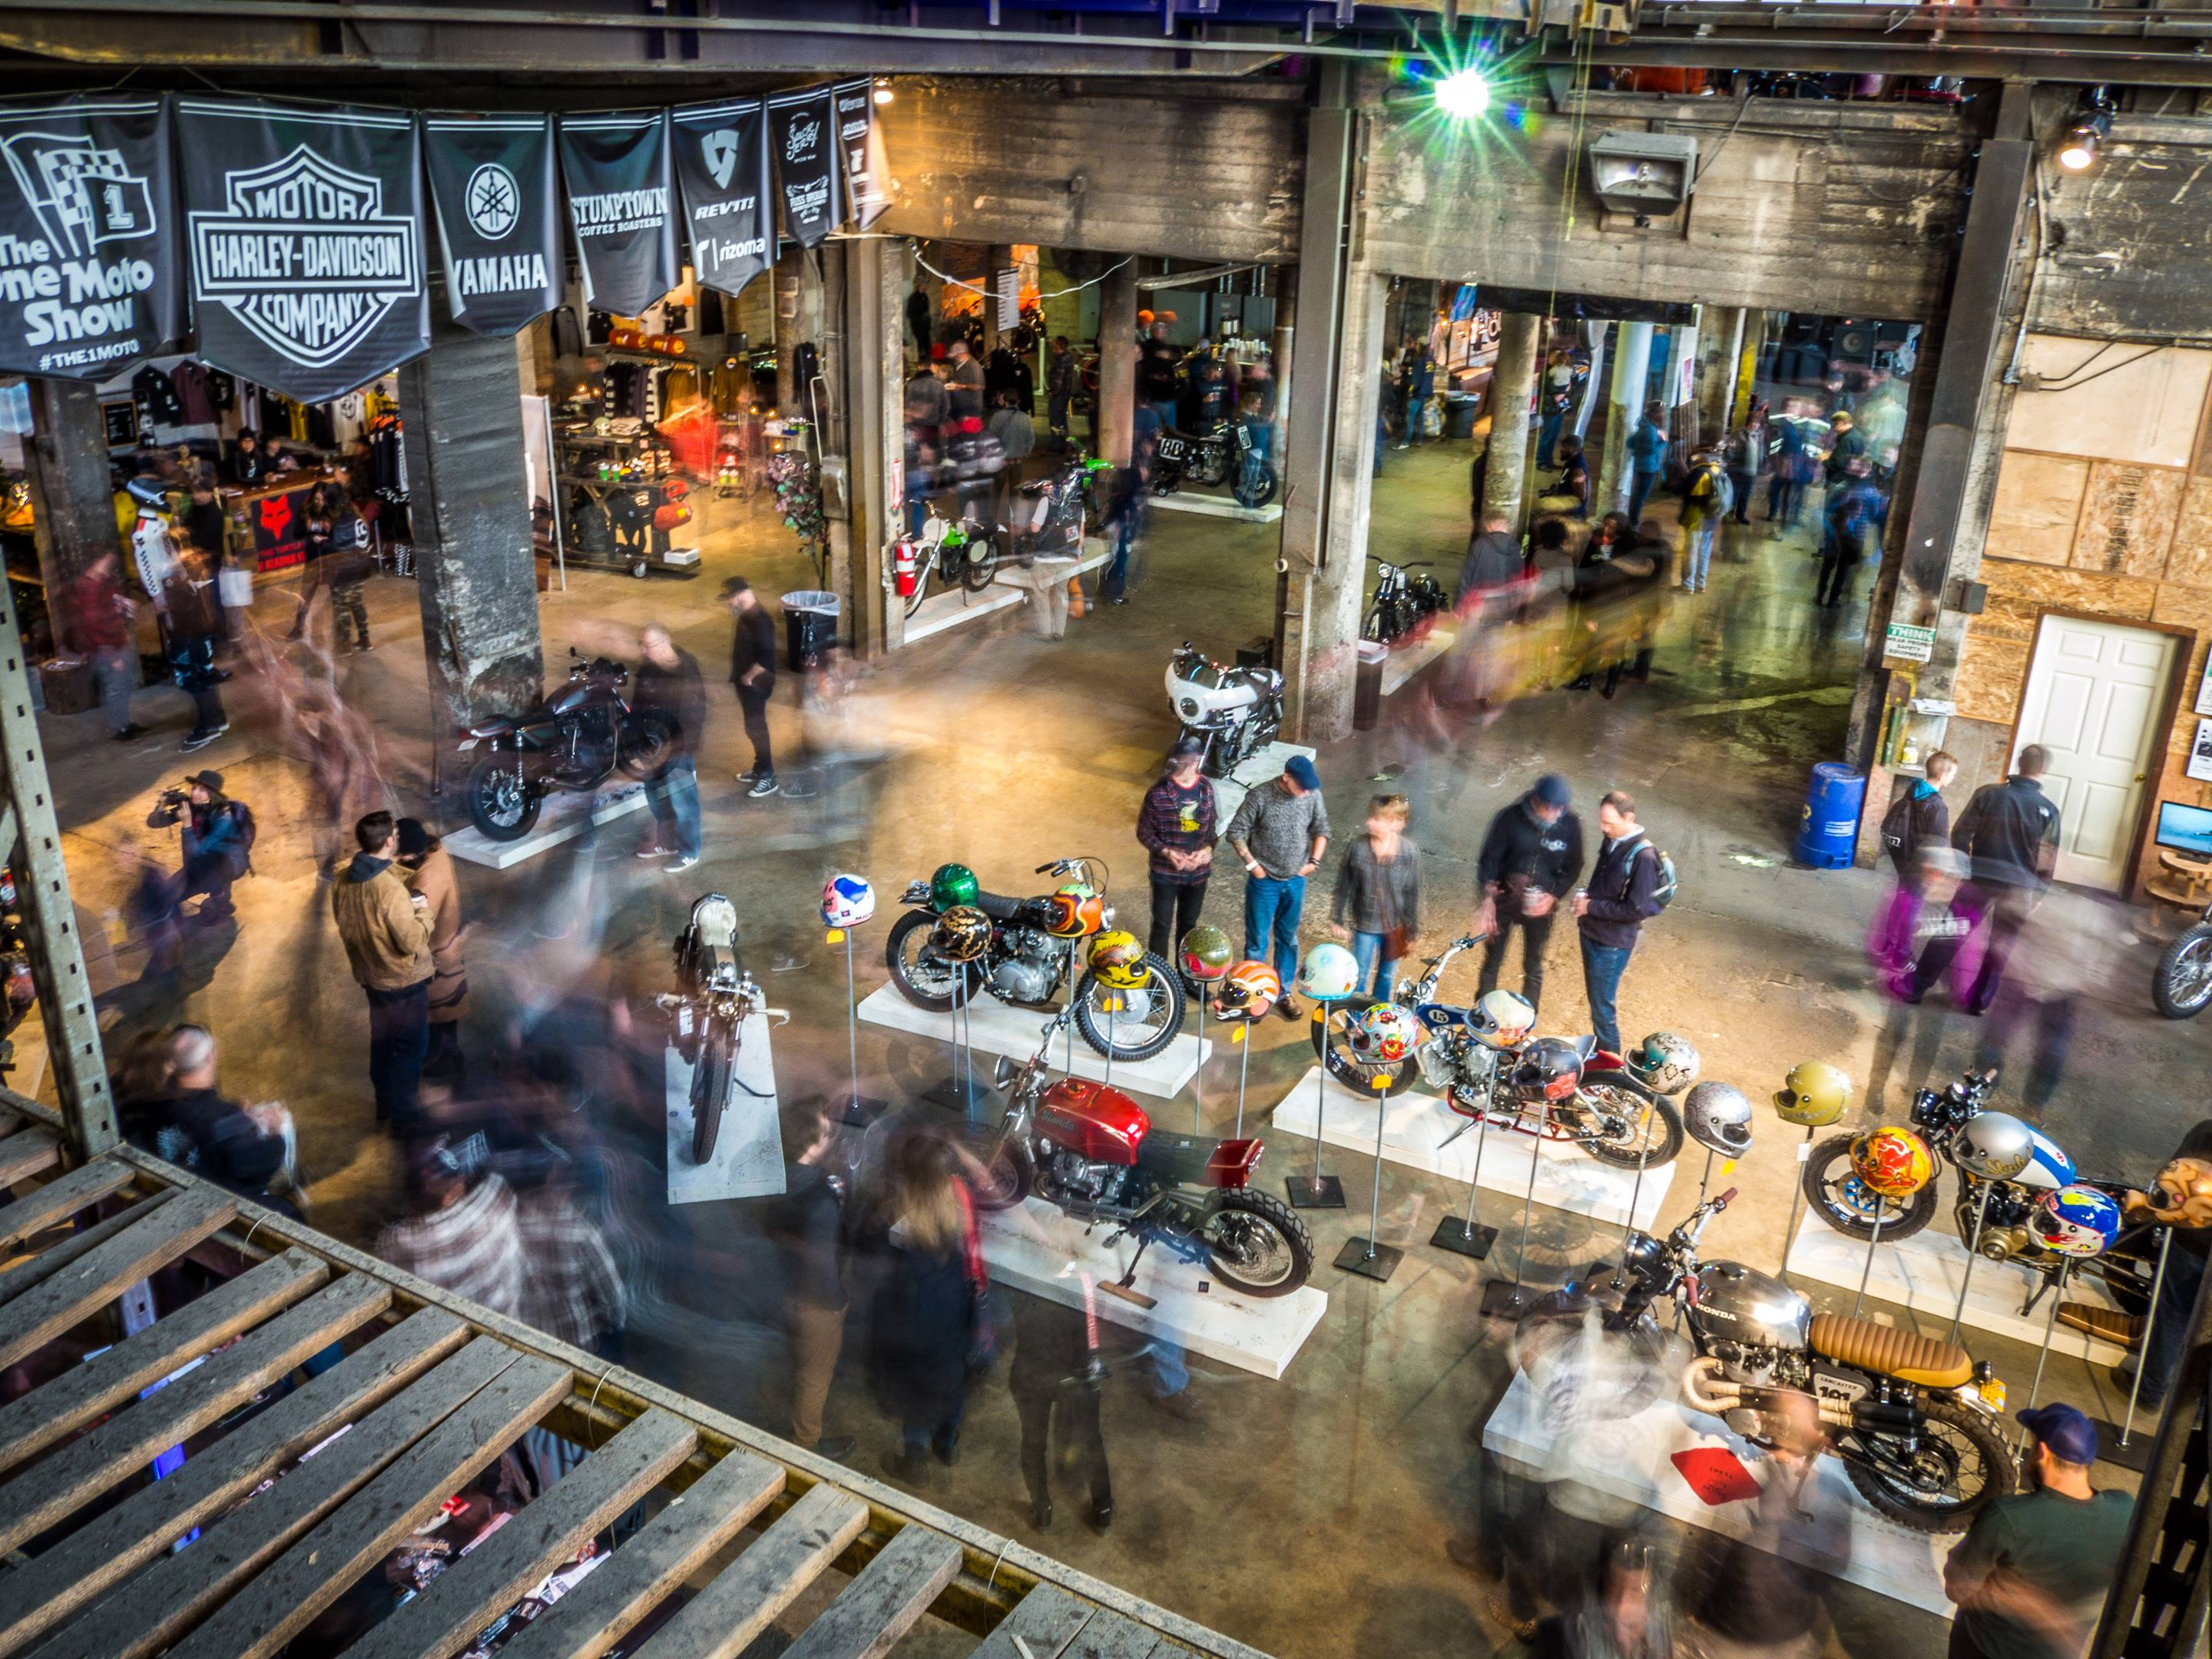 The One Moto Show was a flurry of activity for three straight days.